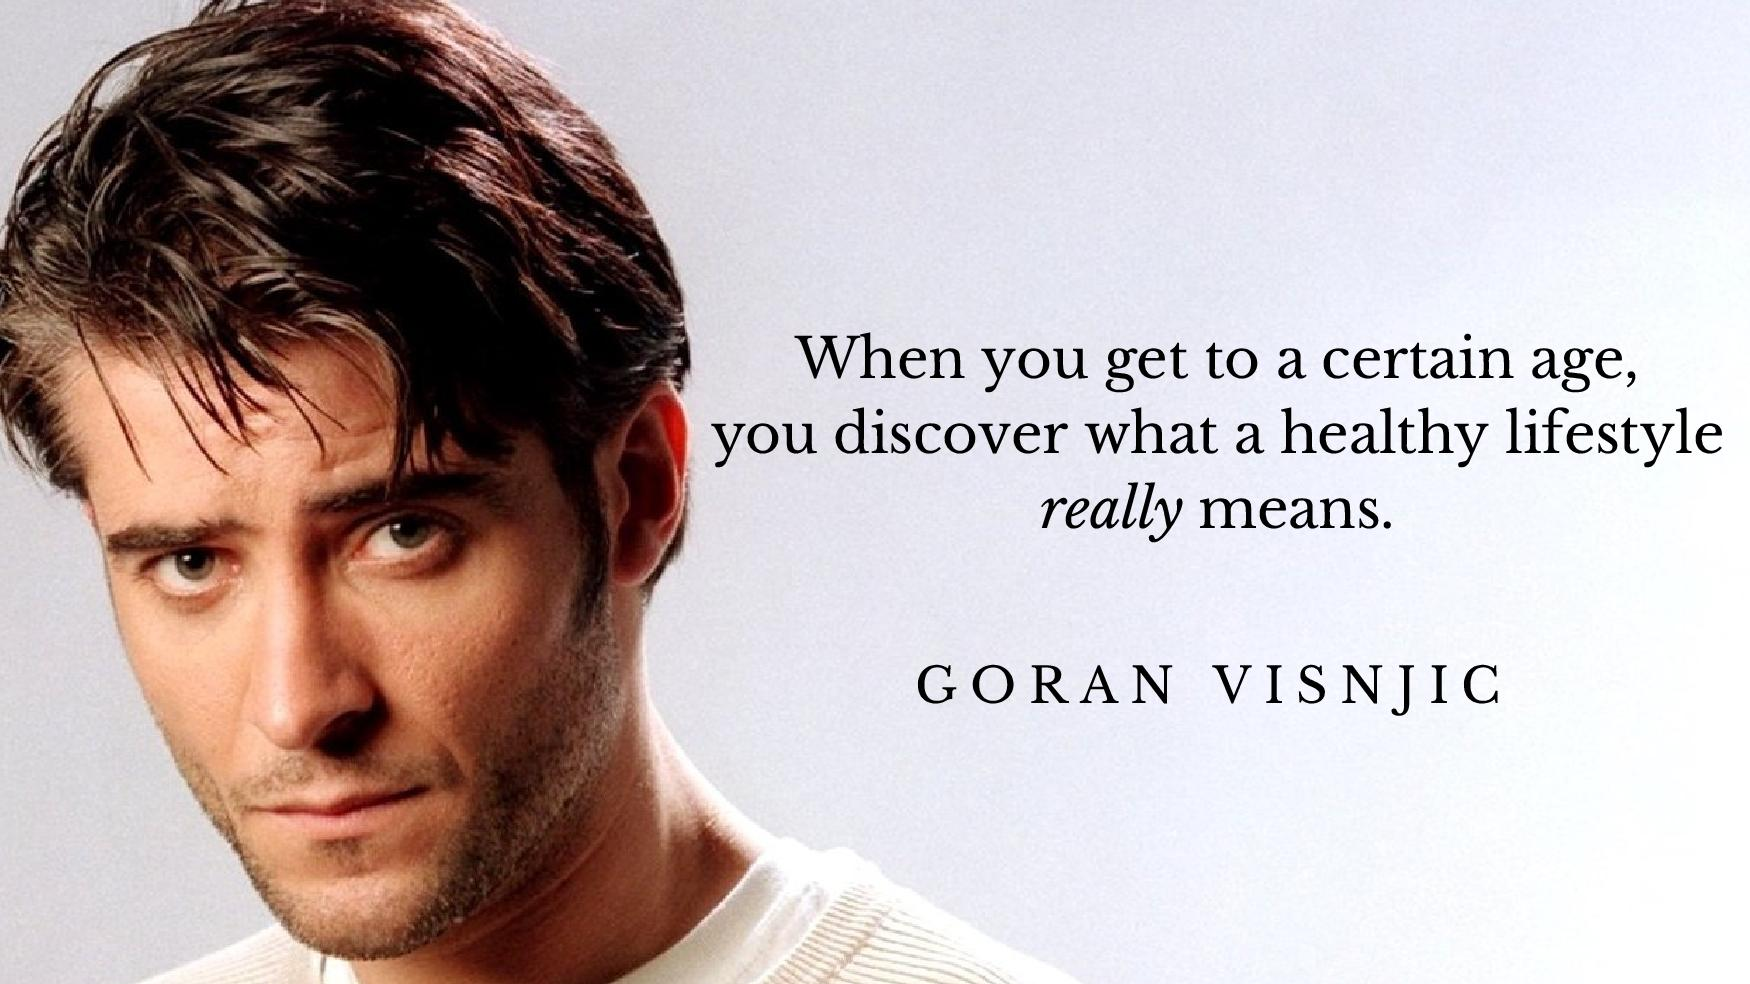 goran visnjic quote